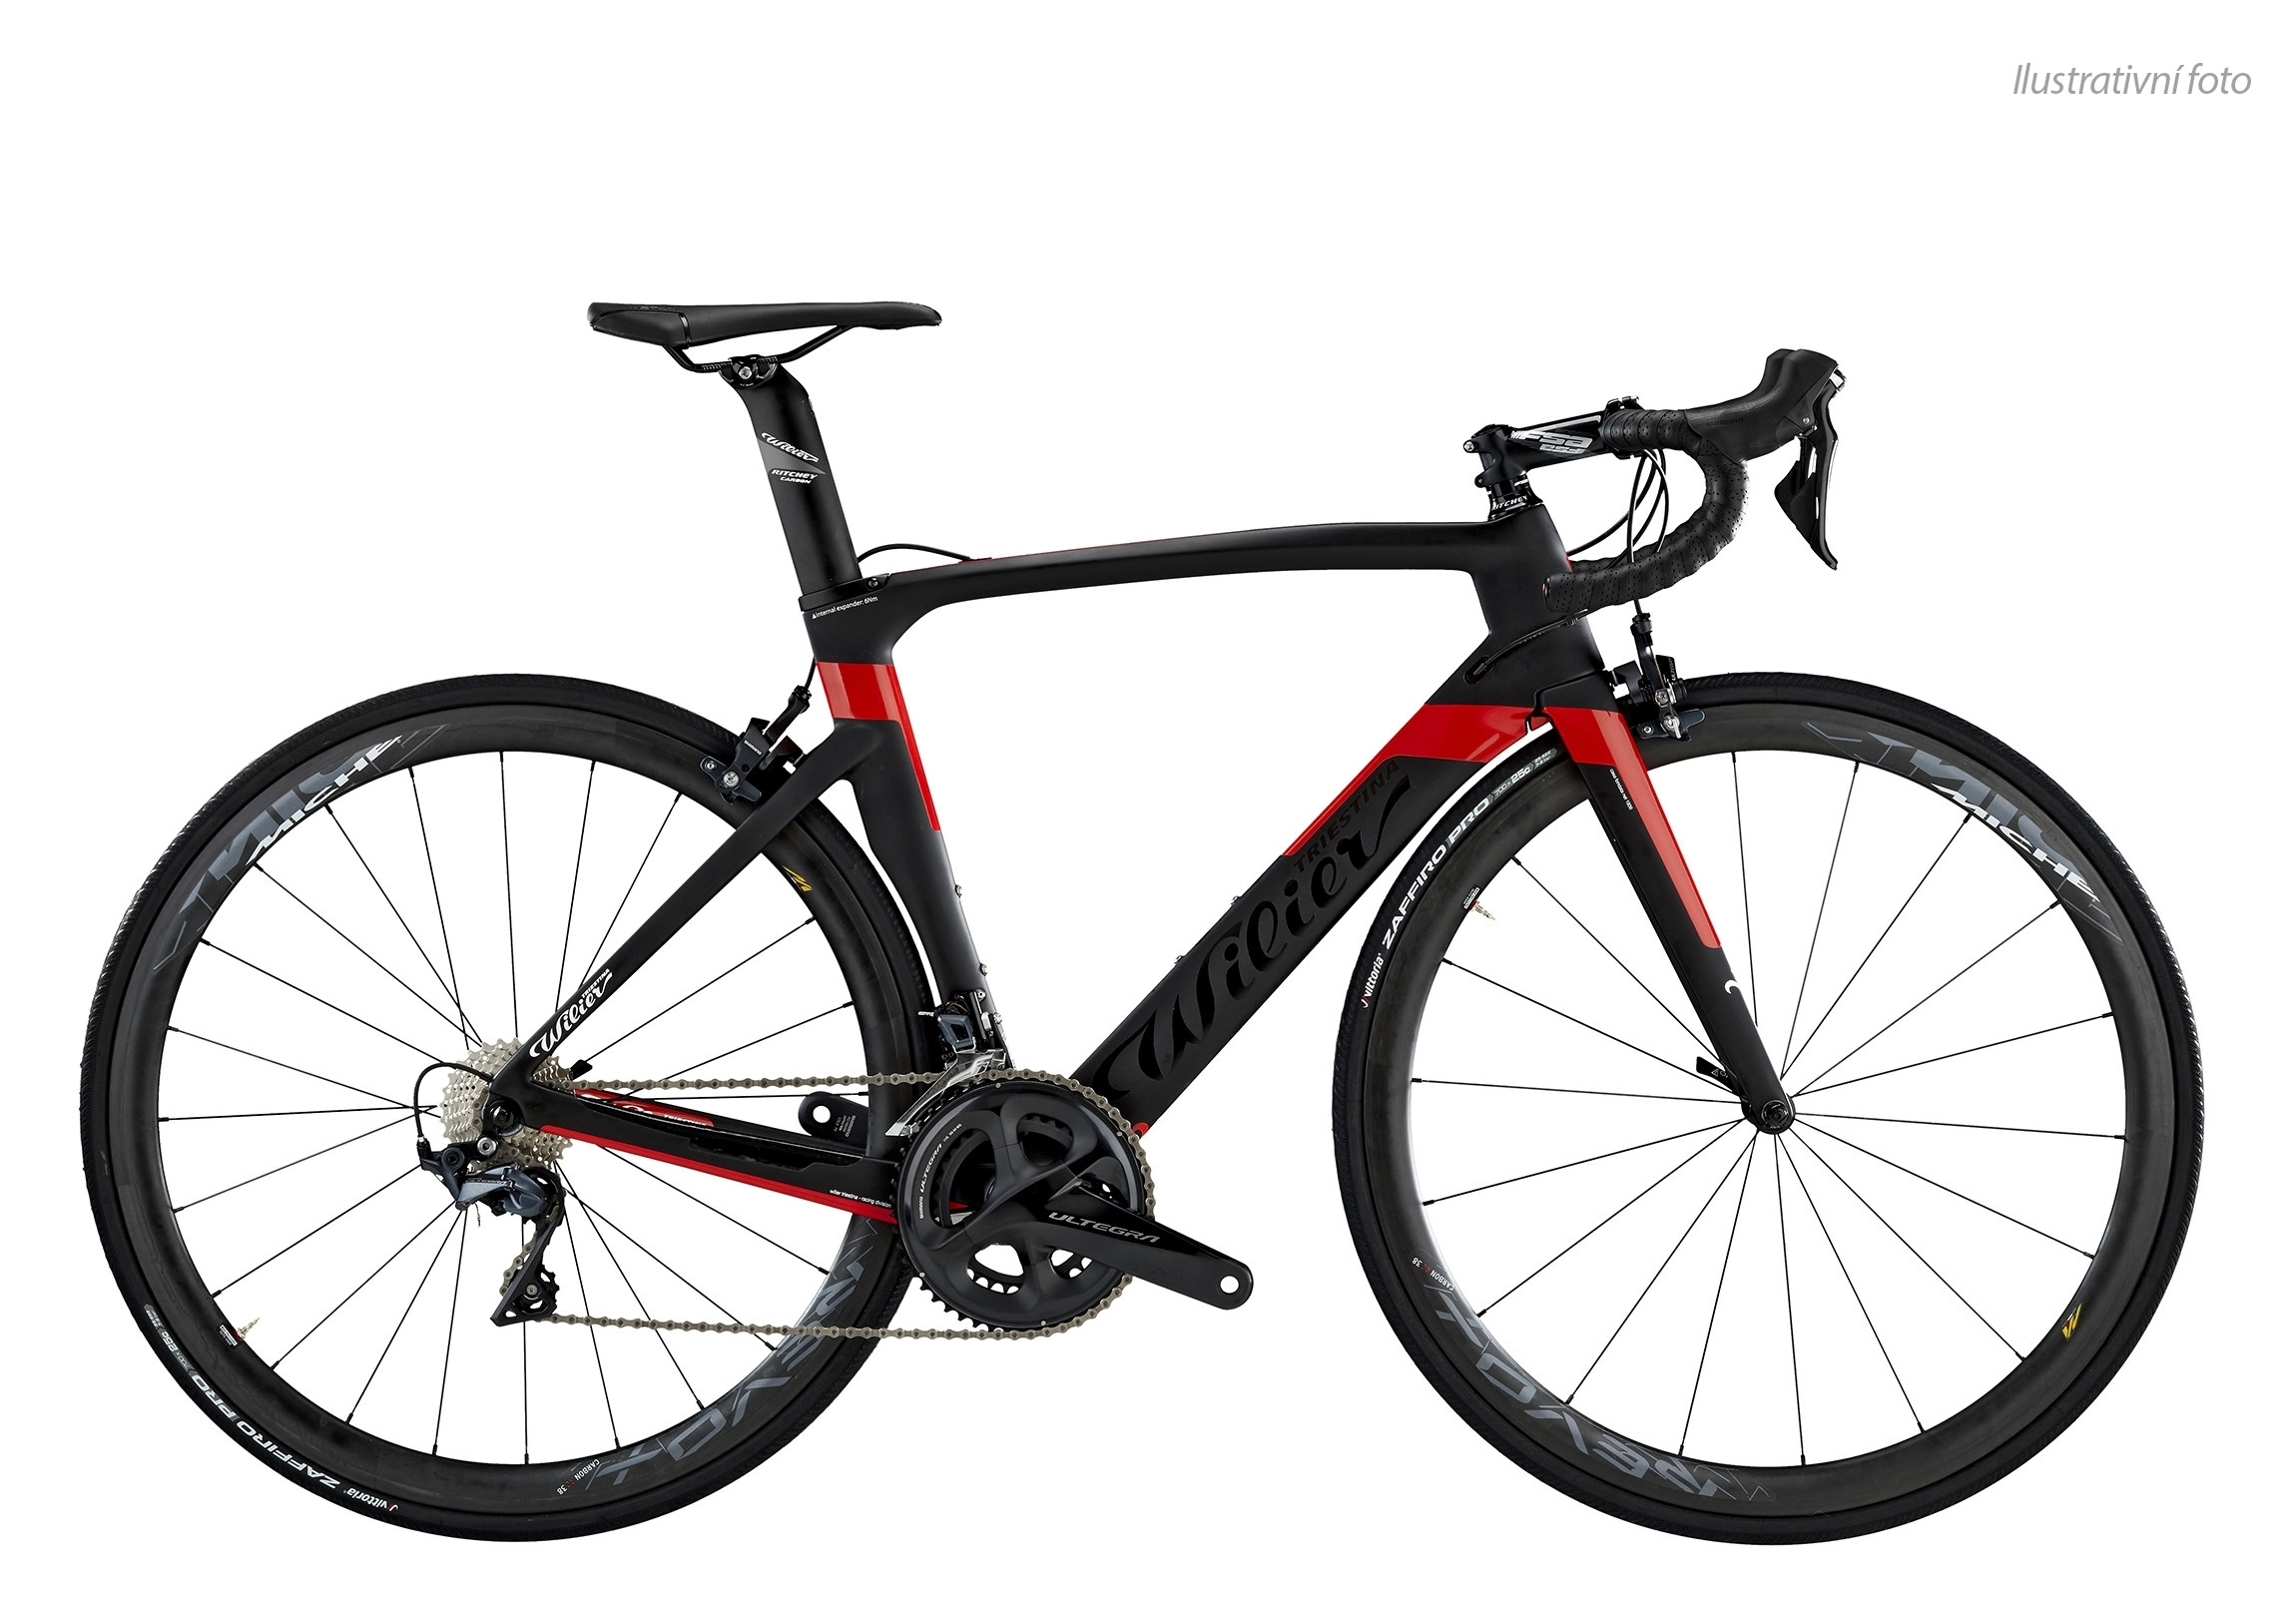 kolo CENTO1AIR 2018+ULTEGRA+COS.ELITE Black Red S